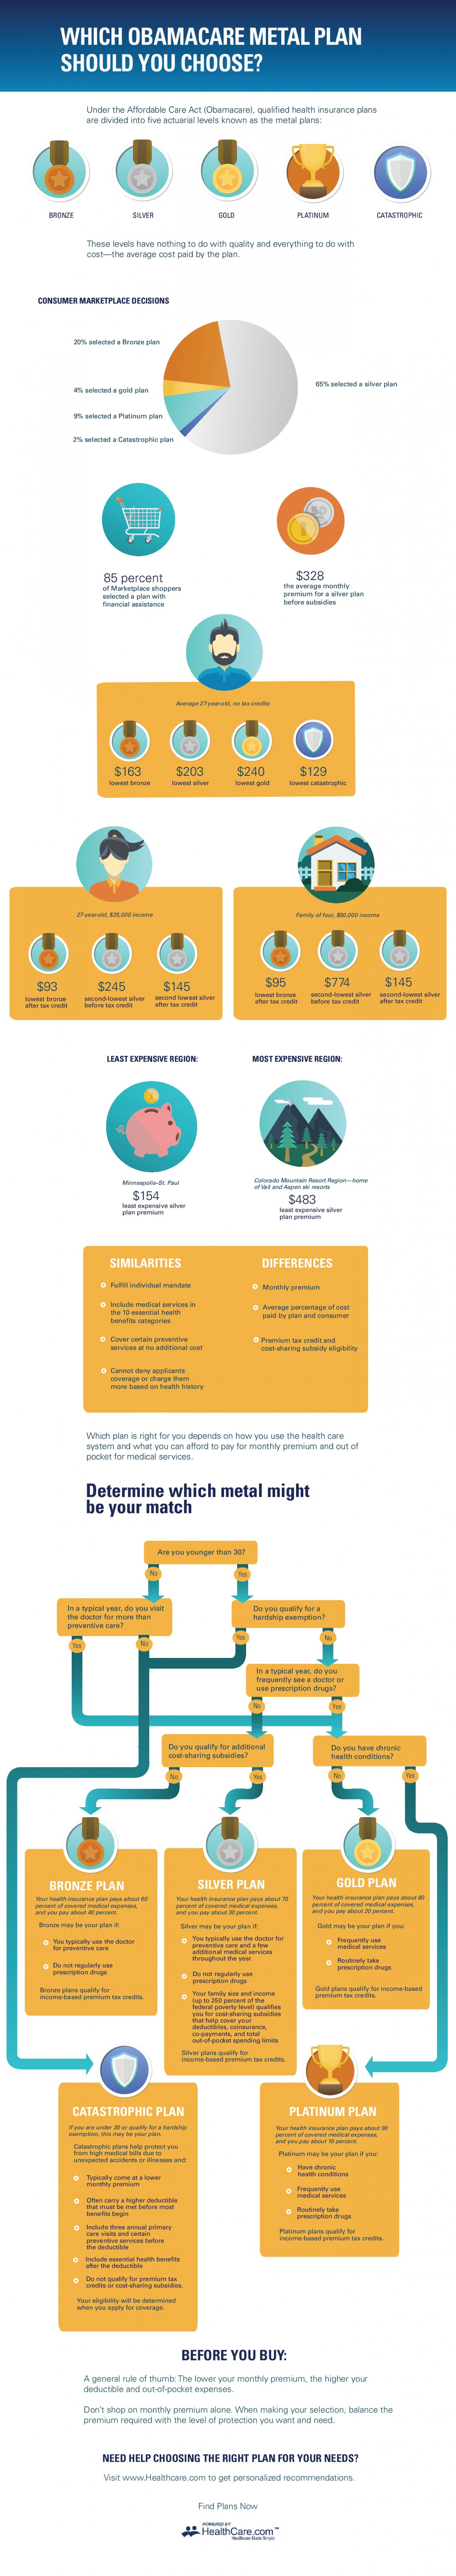 Which Obamacare Metal Plan Should You Choose? Infographic